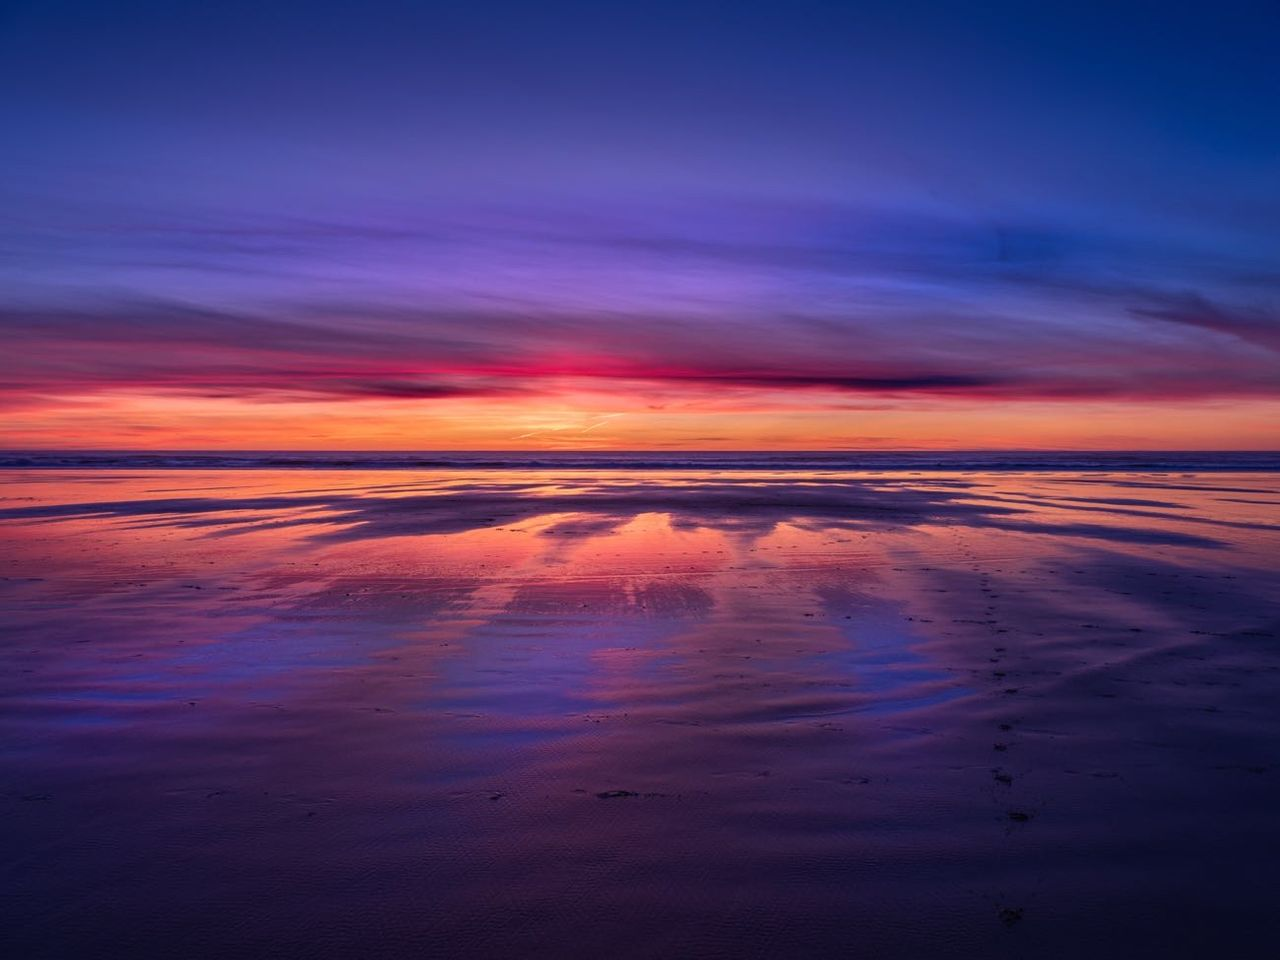 water, sky, sea, tranquility, sunset, cloud - sky, scenics - nature, reflection, beauty in nature, tranquil scene, nature, no people, beach, orange color, land, horizon over water, idyllic, dramatic sky, horizon, outdoors, purple, romantic sky